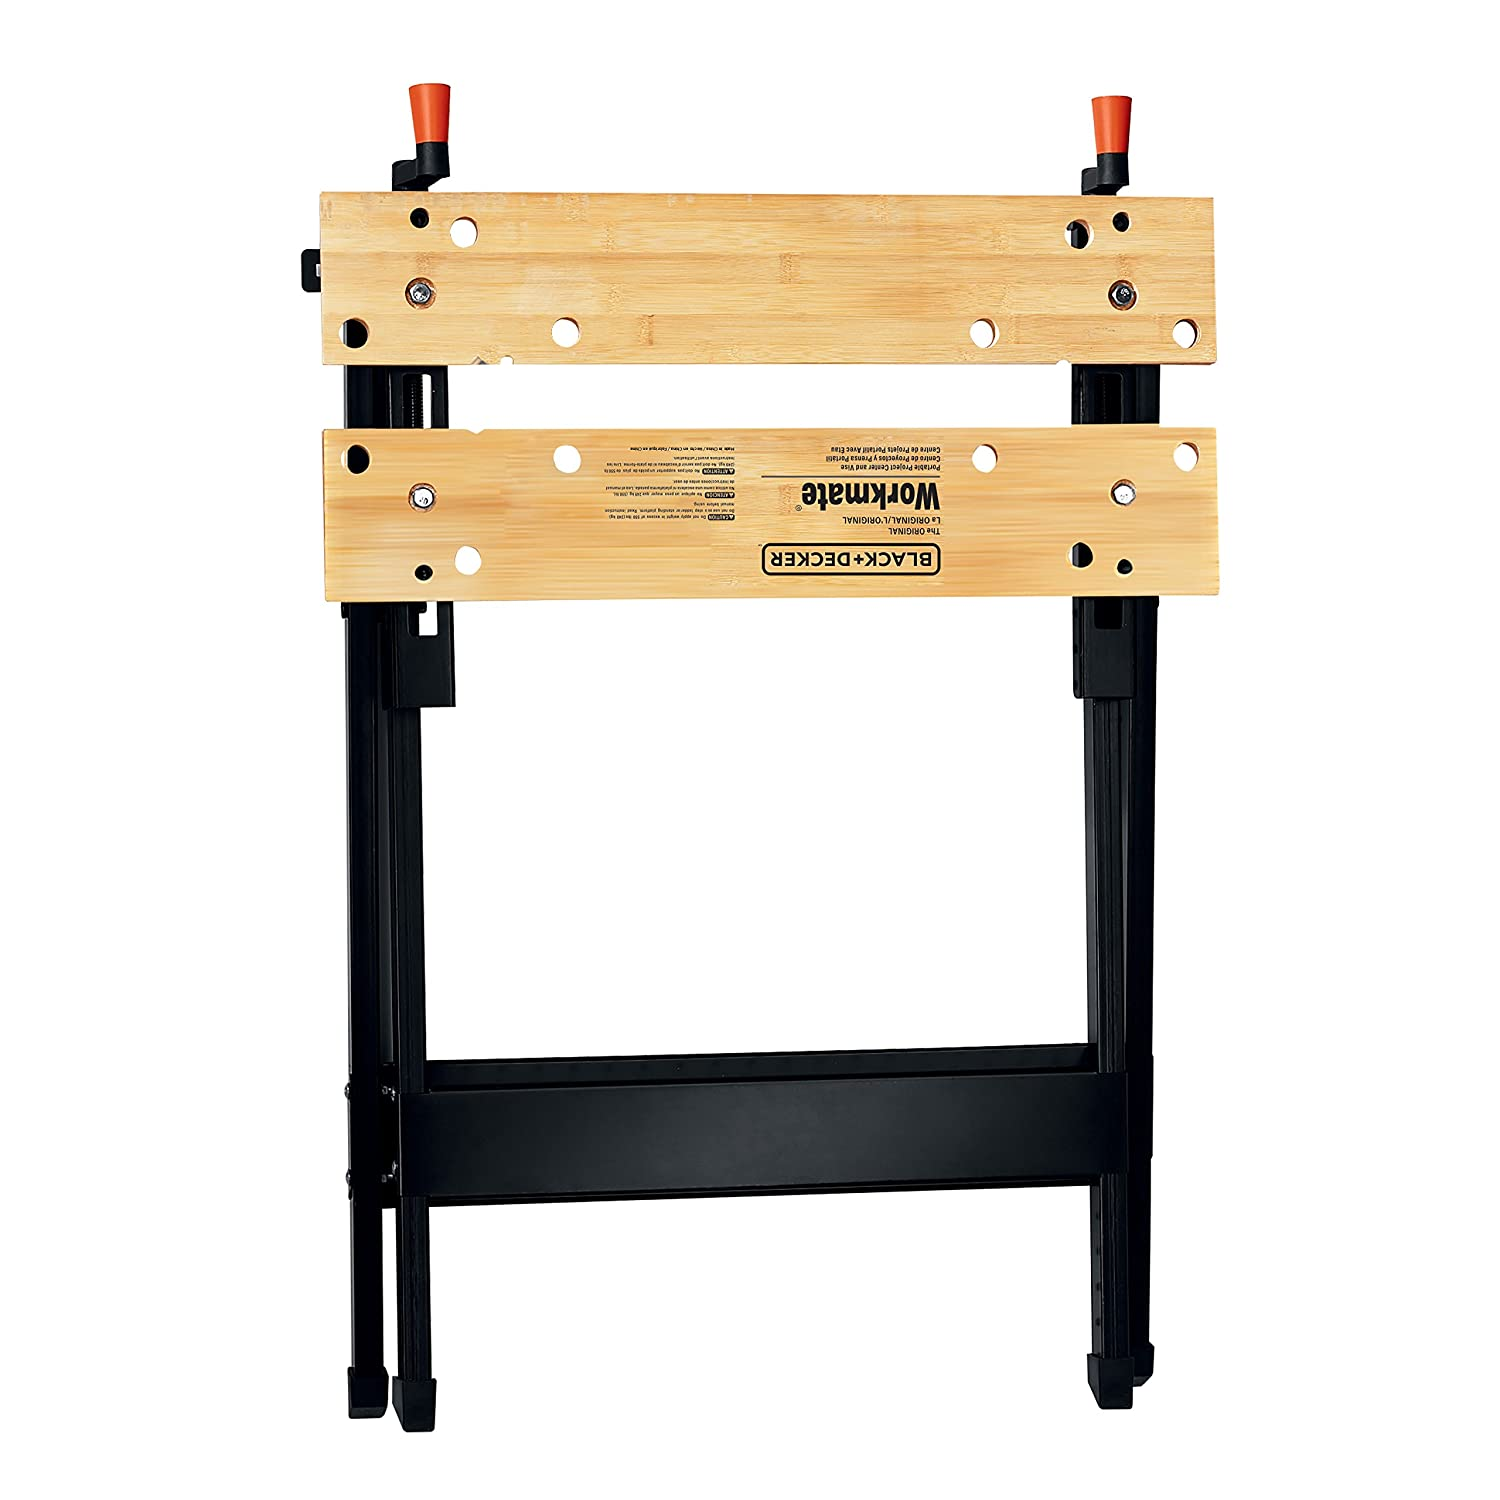 Black and decker workmate 1000 review - Black Decker Wm125 Workmate 125 350 Pound Capacity Portable Work Bench Workbenches Amazon Com